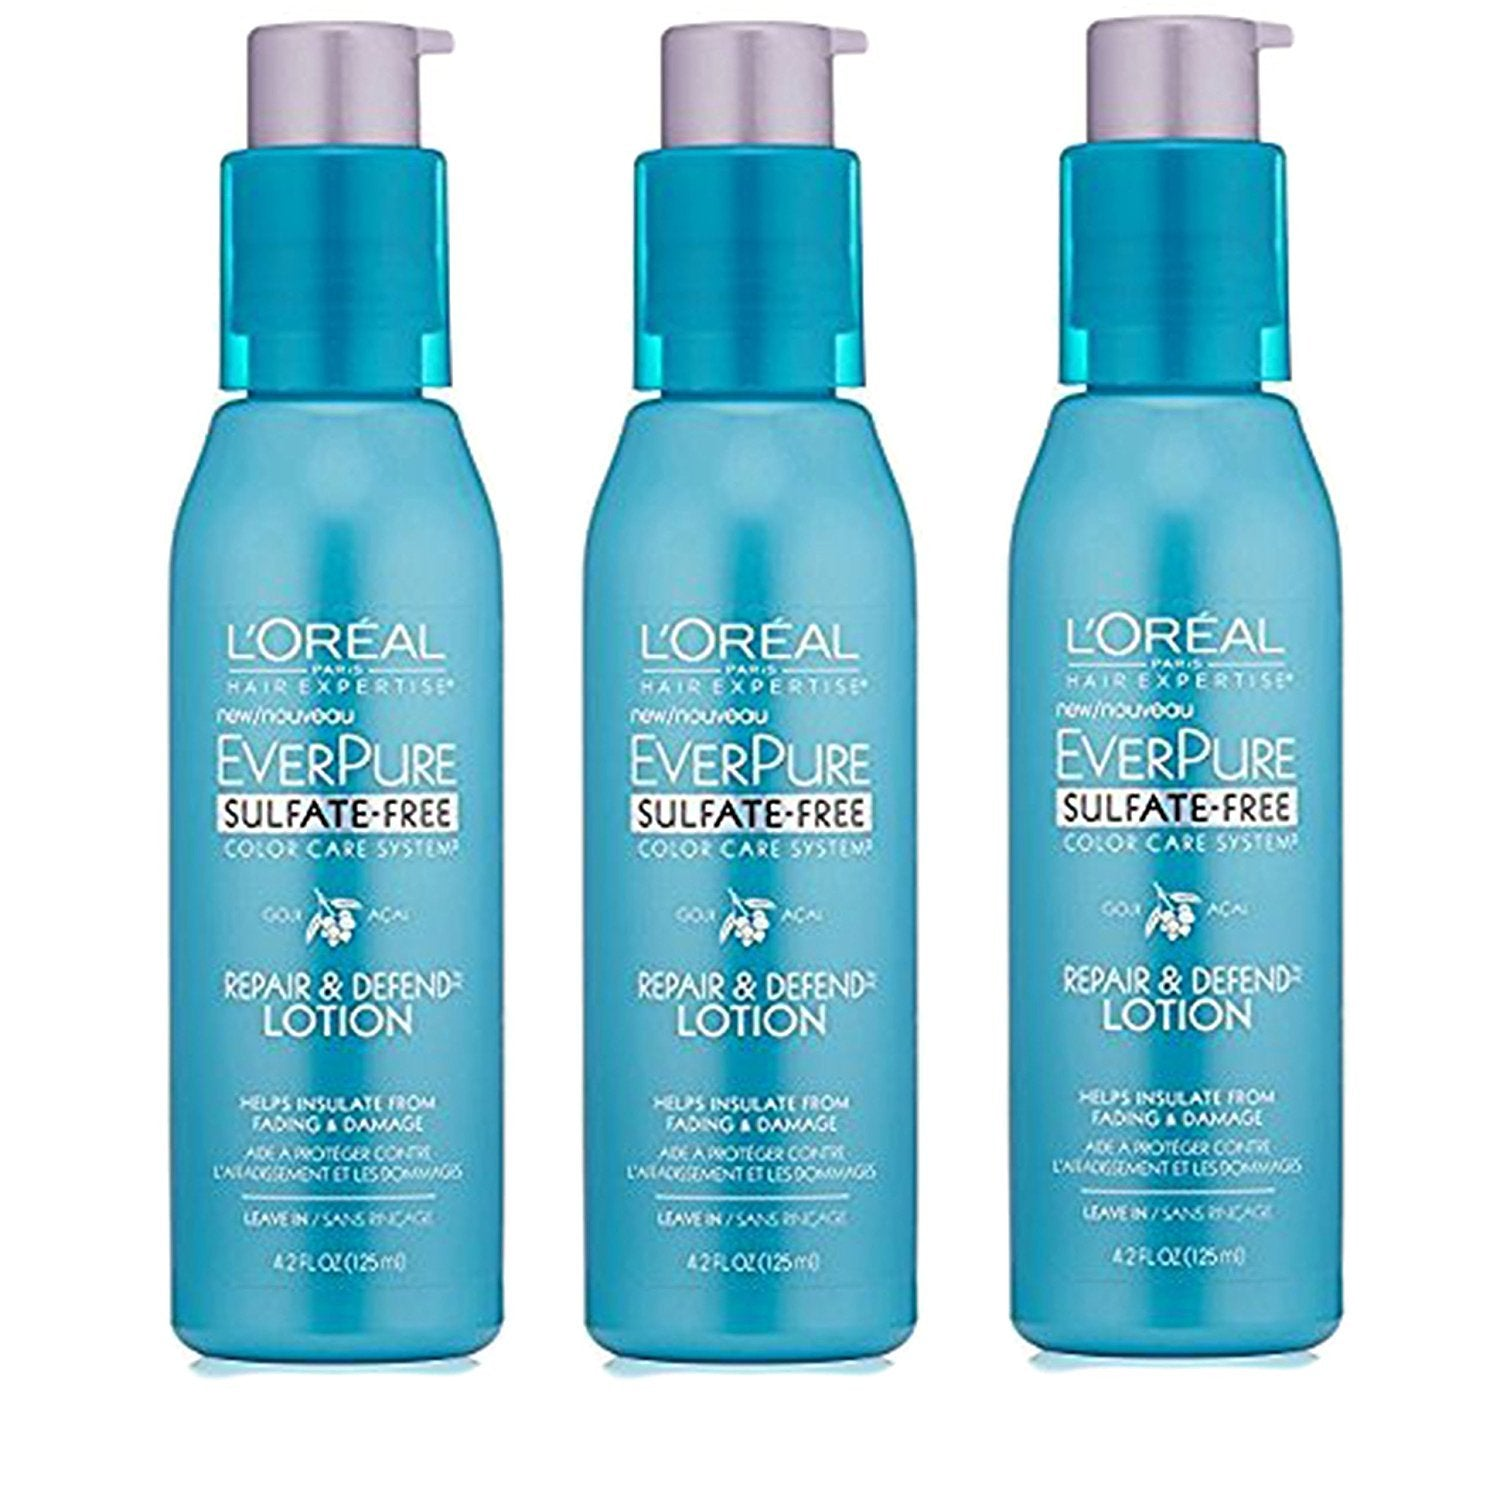 WHOLESALE LOREAL EVERPURE REPAIR & DEFEND LOTION FOR HAIR 4.2 OZ (3 PACK) - 48 PIECE LOT